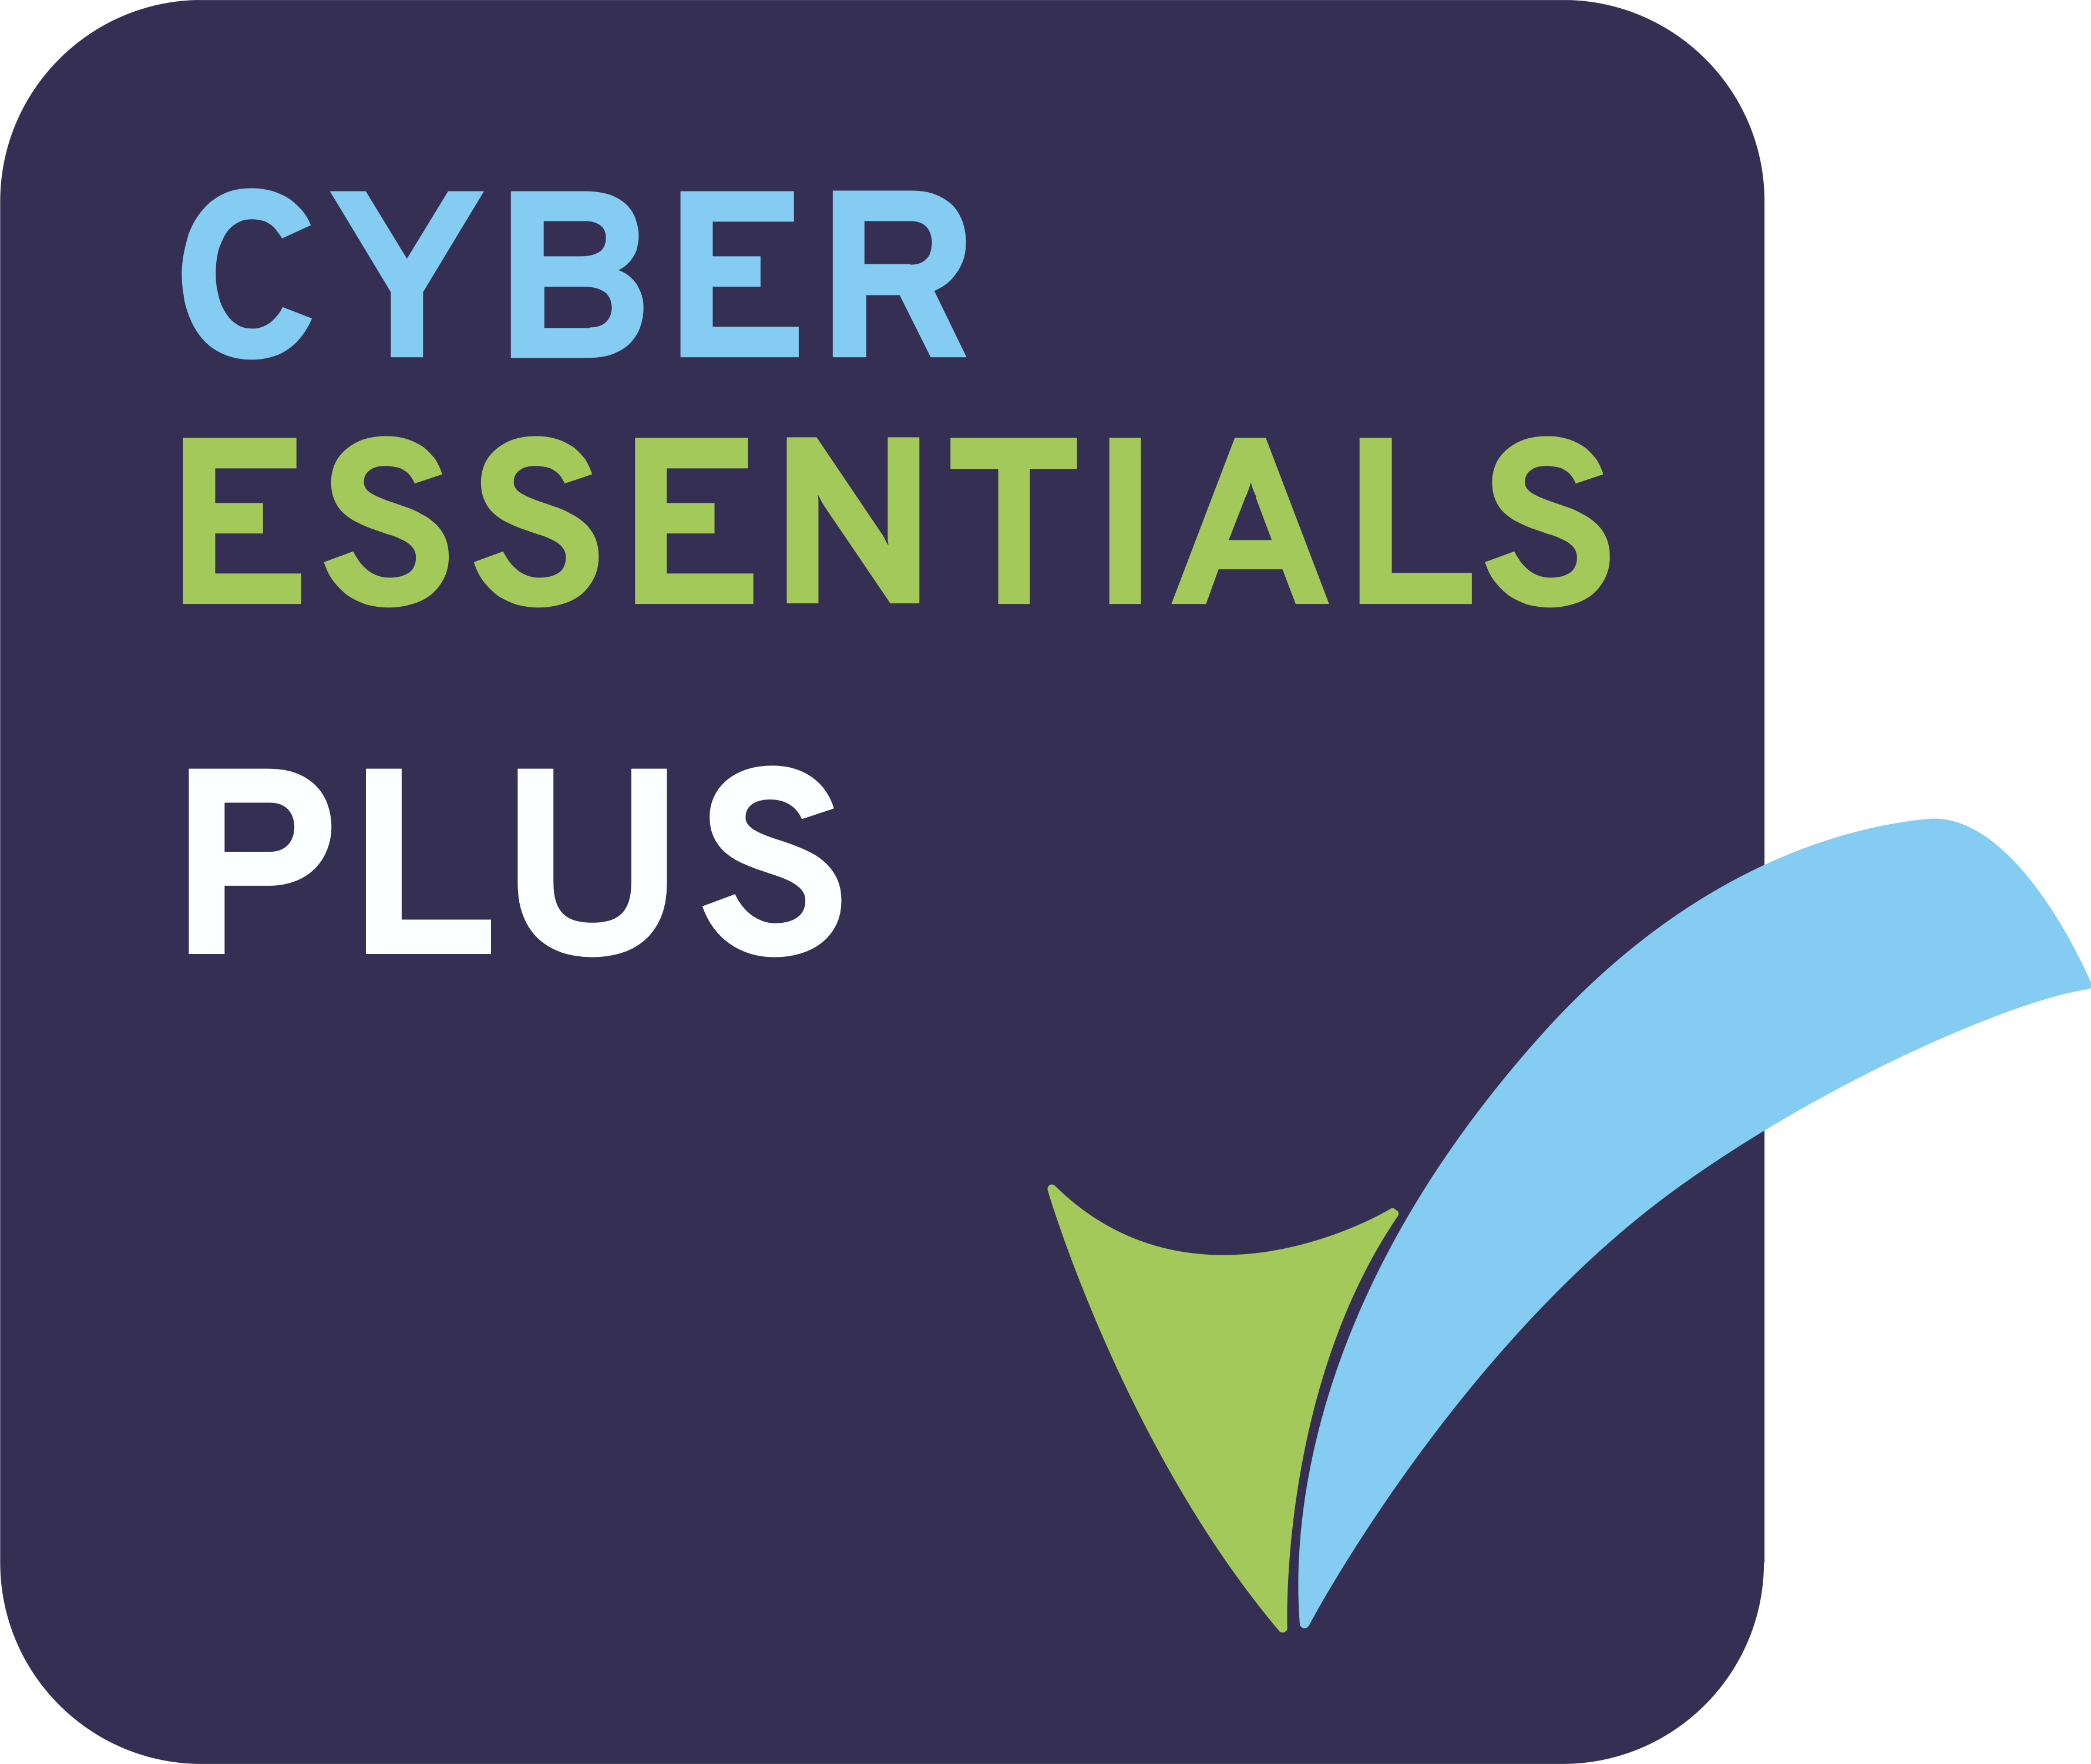 Cyber Essential Plus Technical Office